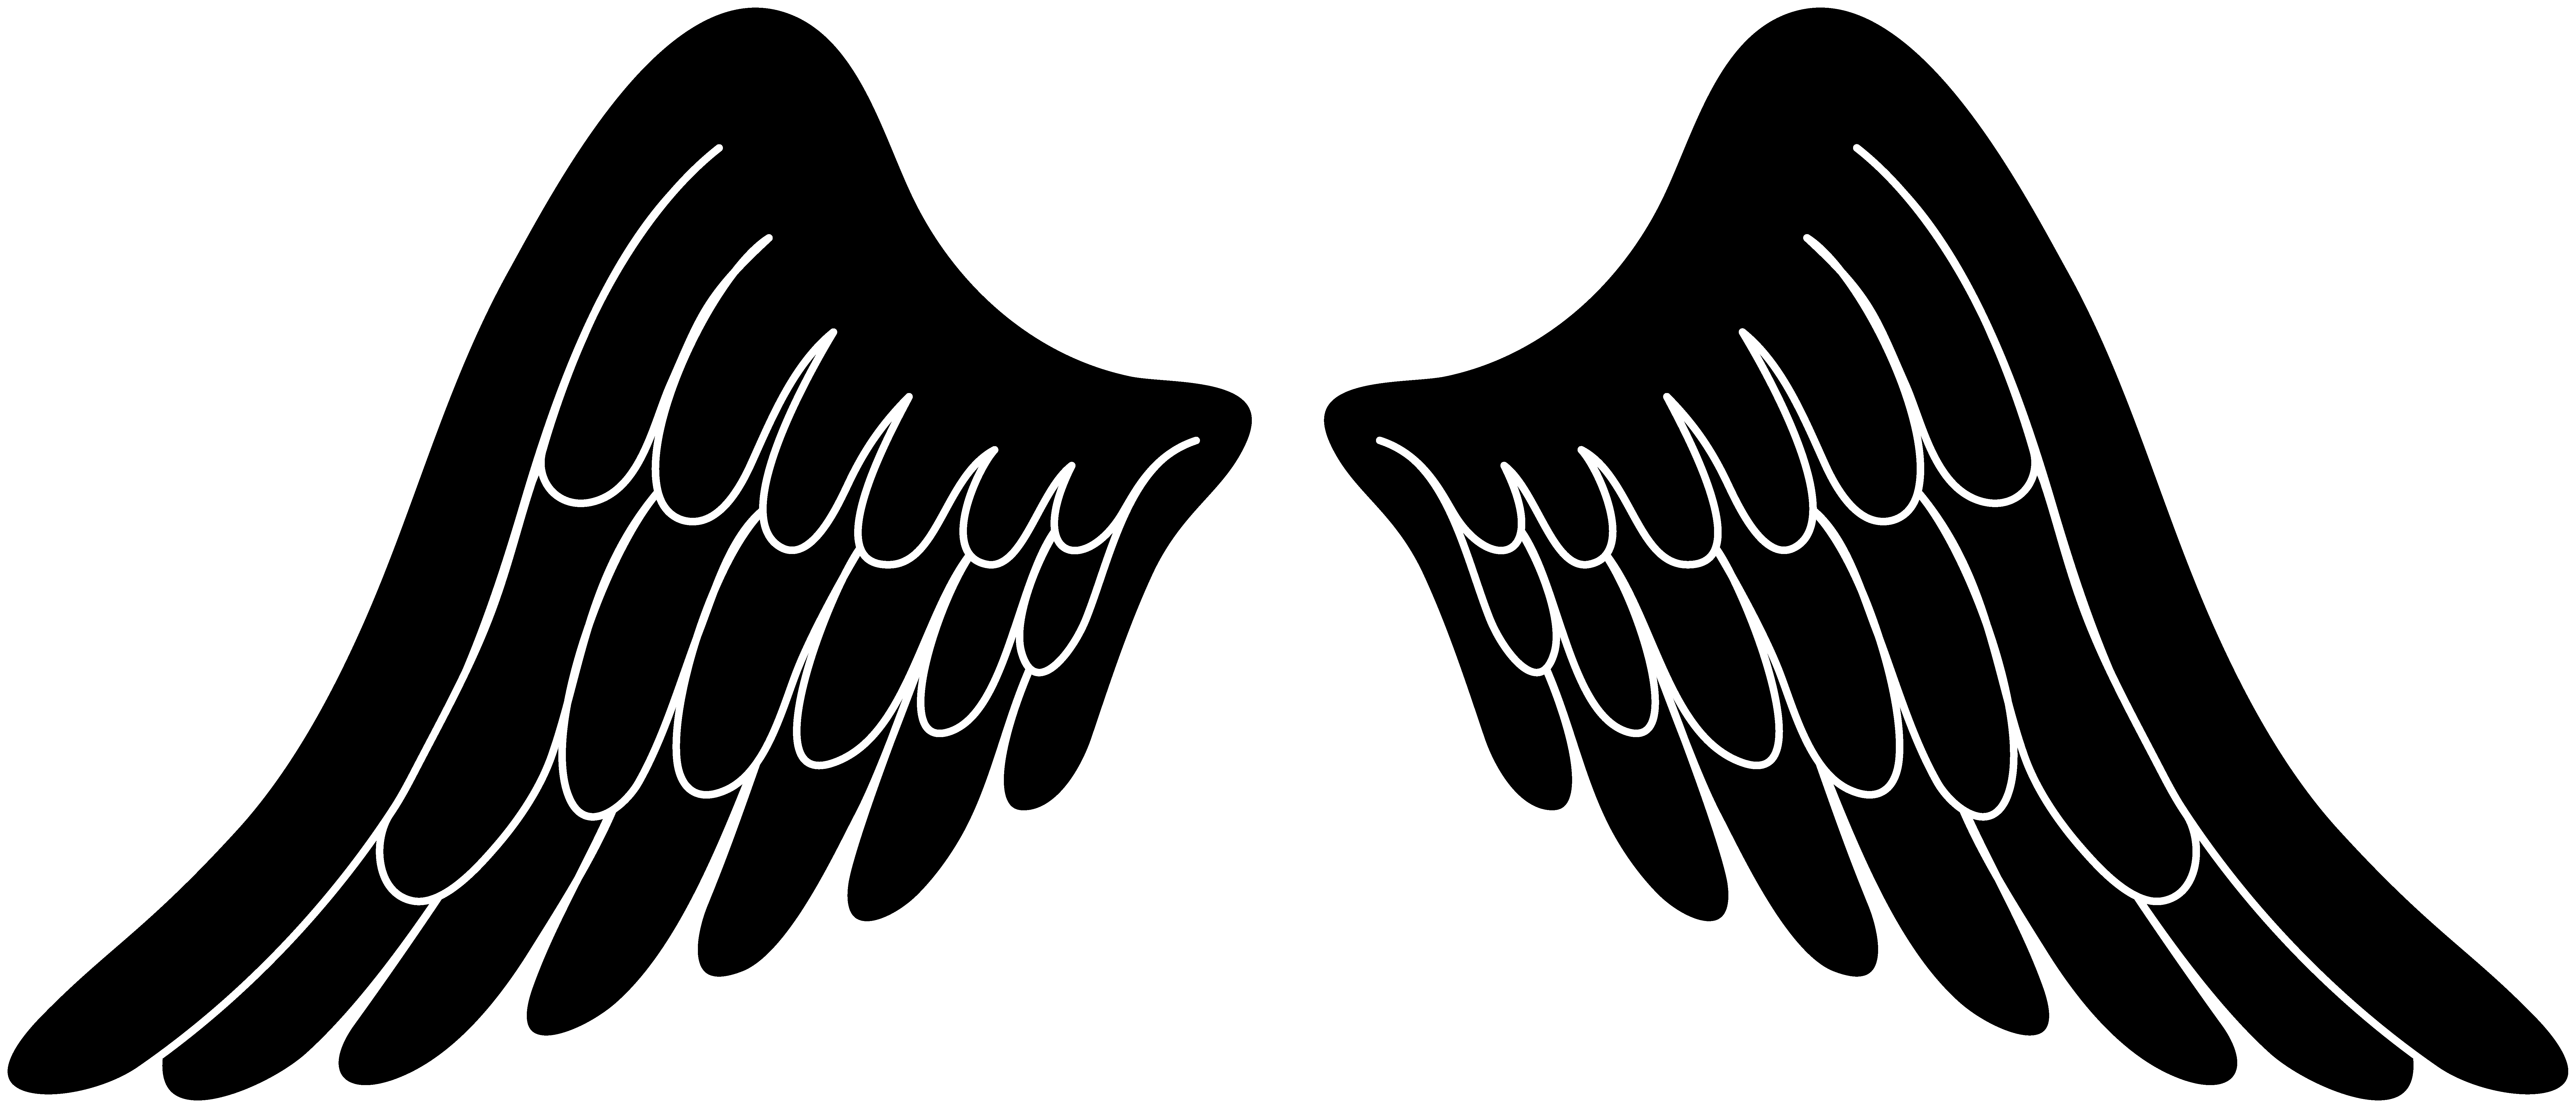 Christmas angels clipart black and white graphic stock Angel pari clipart graphic stock